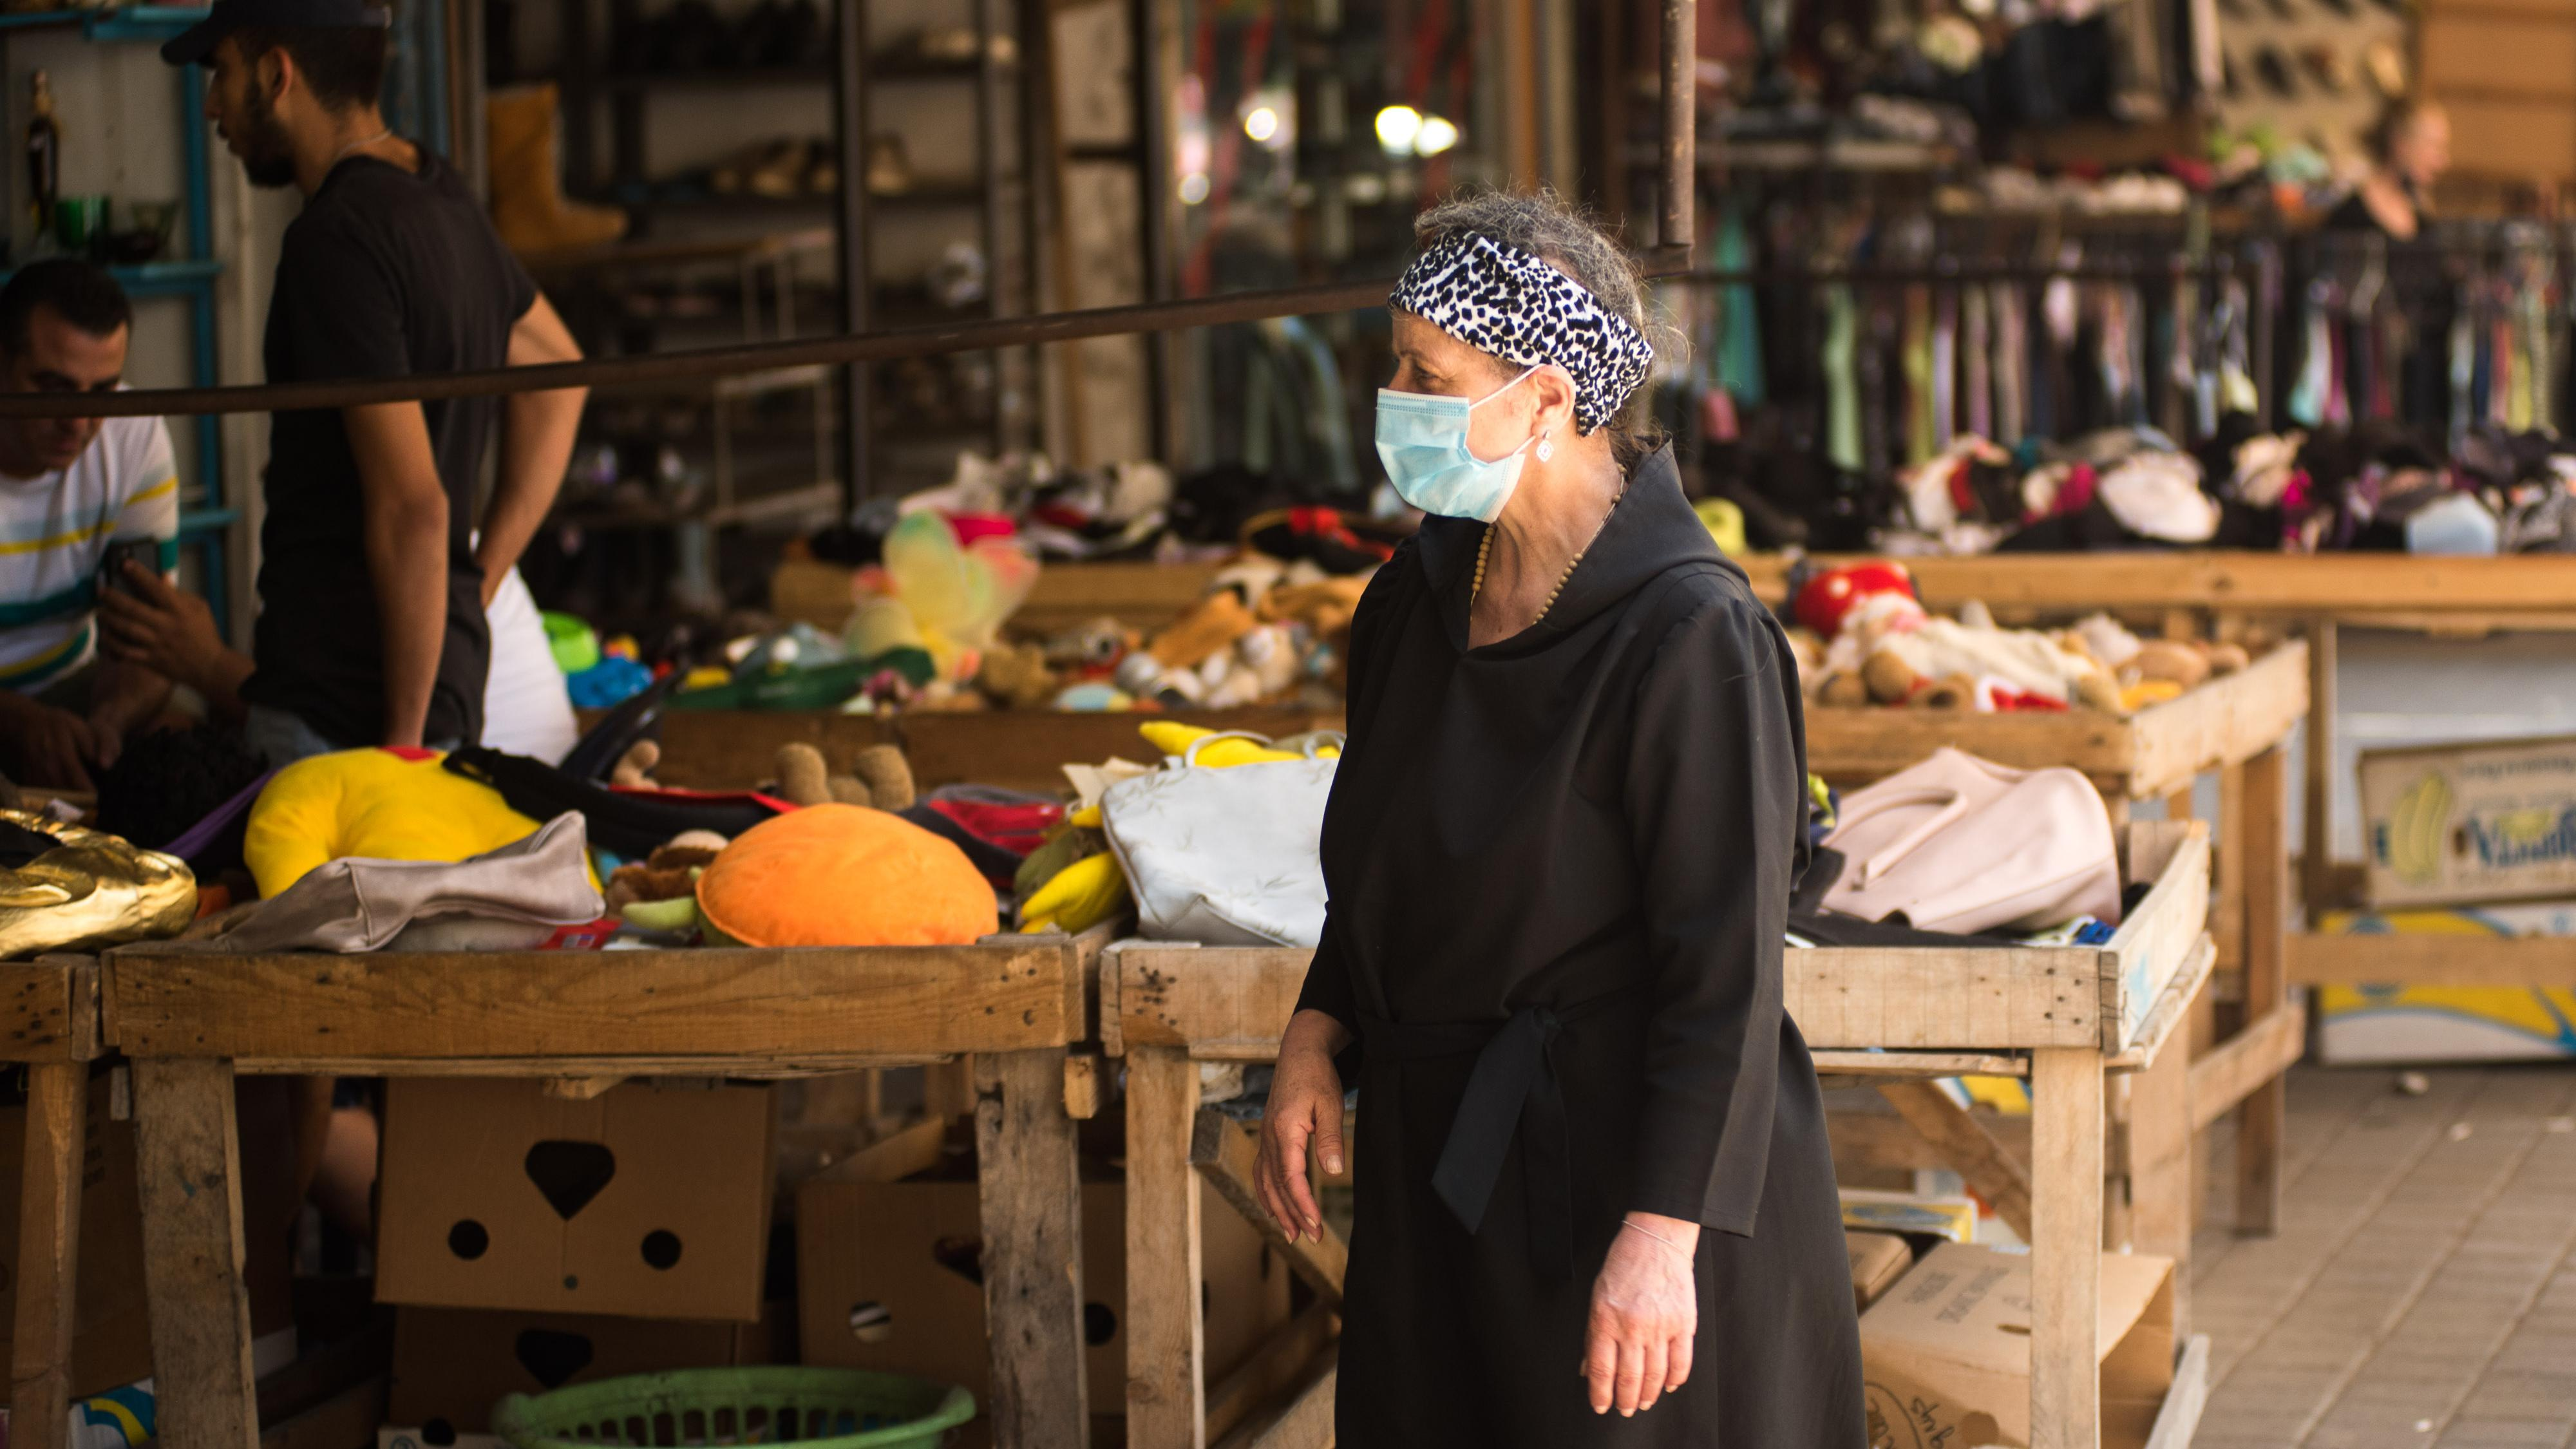 A woman donning a mask makes her way through a secondhand market in Tripoli near Nahr Abu Ali. Tripoli, Lebanon. June 13, 2020. (Natheer Halawani/The Public Source)